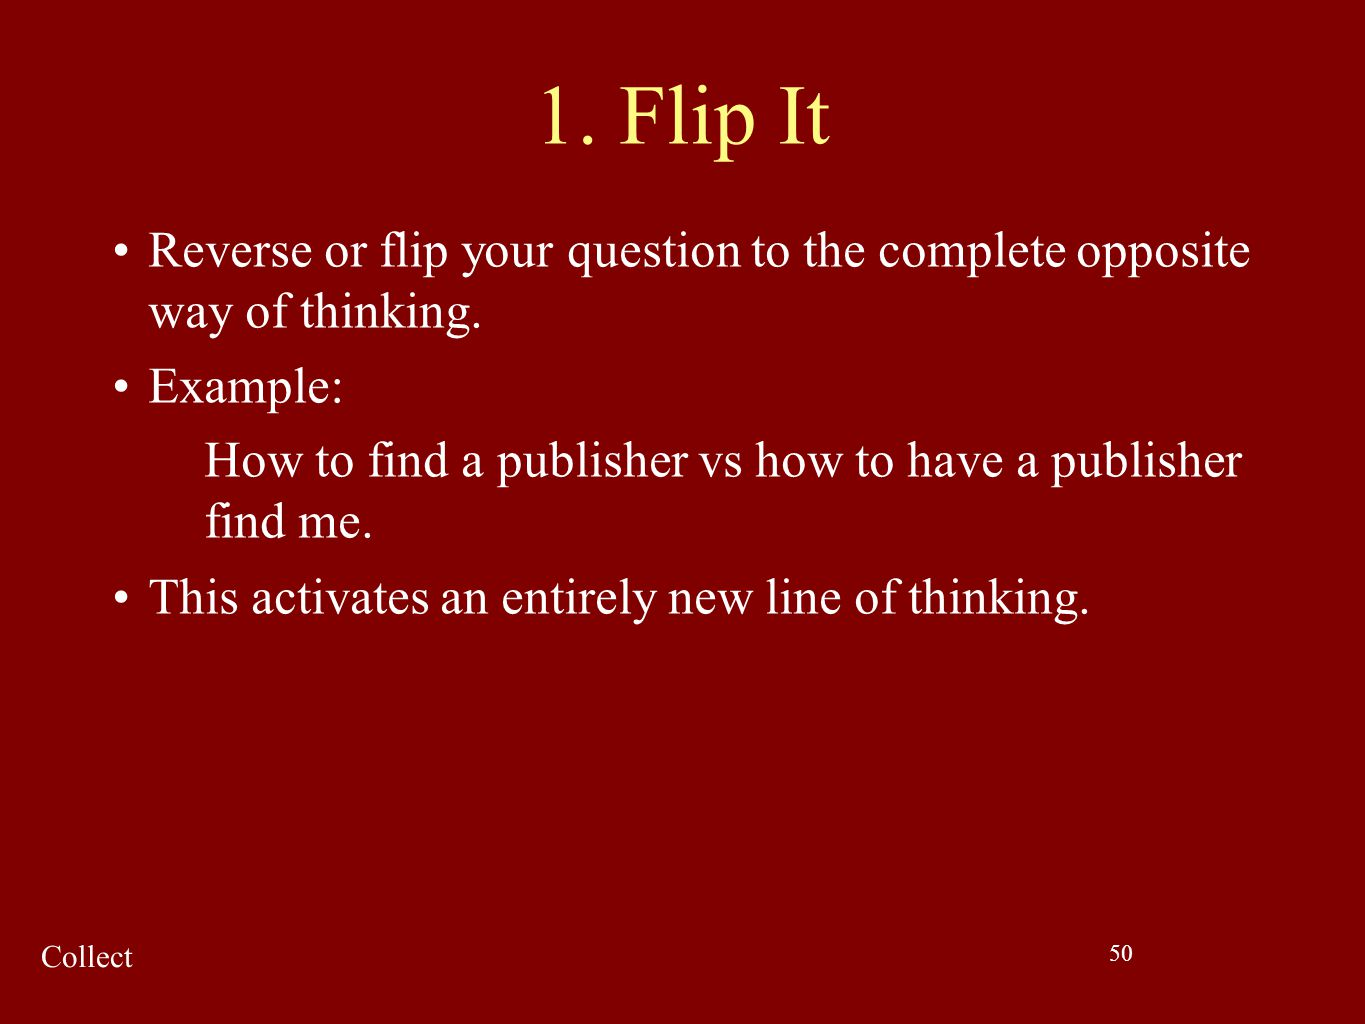 50 1. Flip It Reverse or flip your question to the complete opposite way of thinking. Example: How to find a publisher vs how to have a publisher find